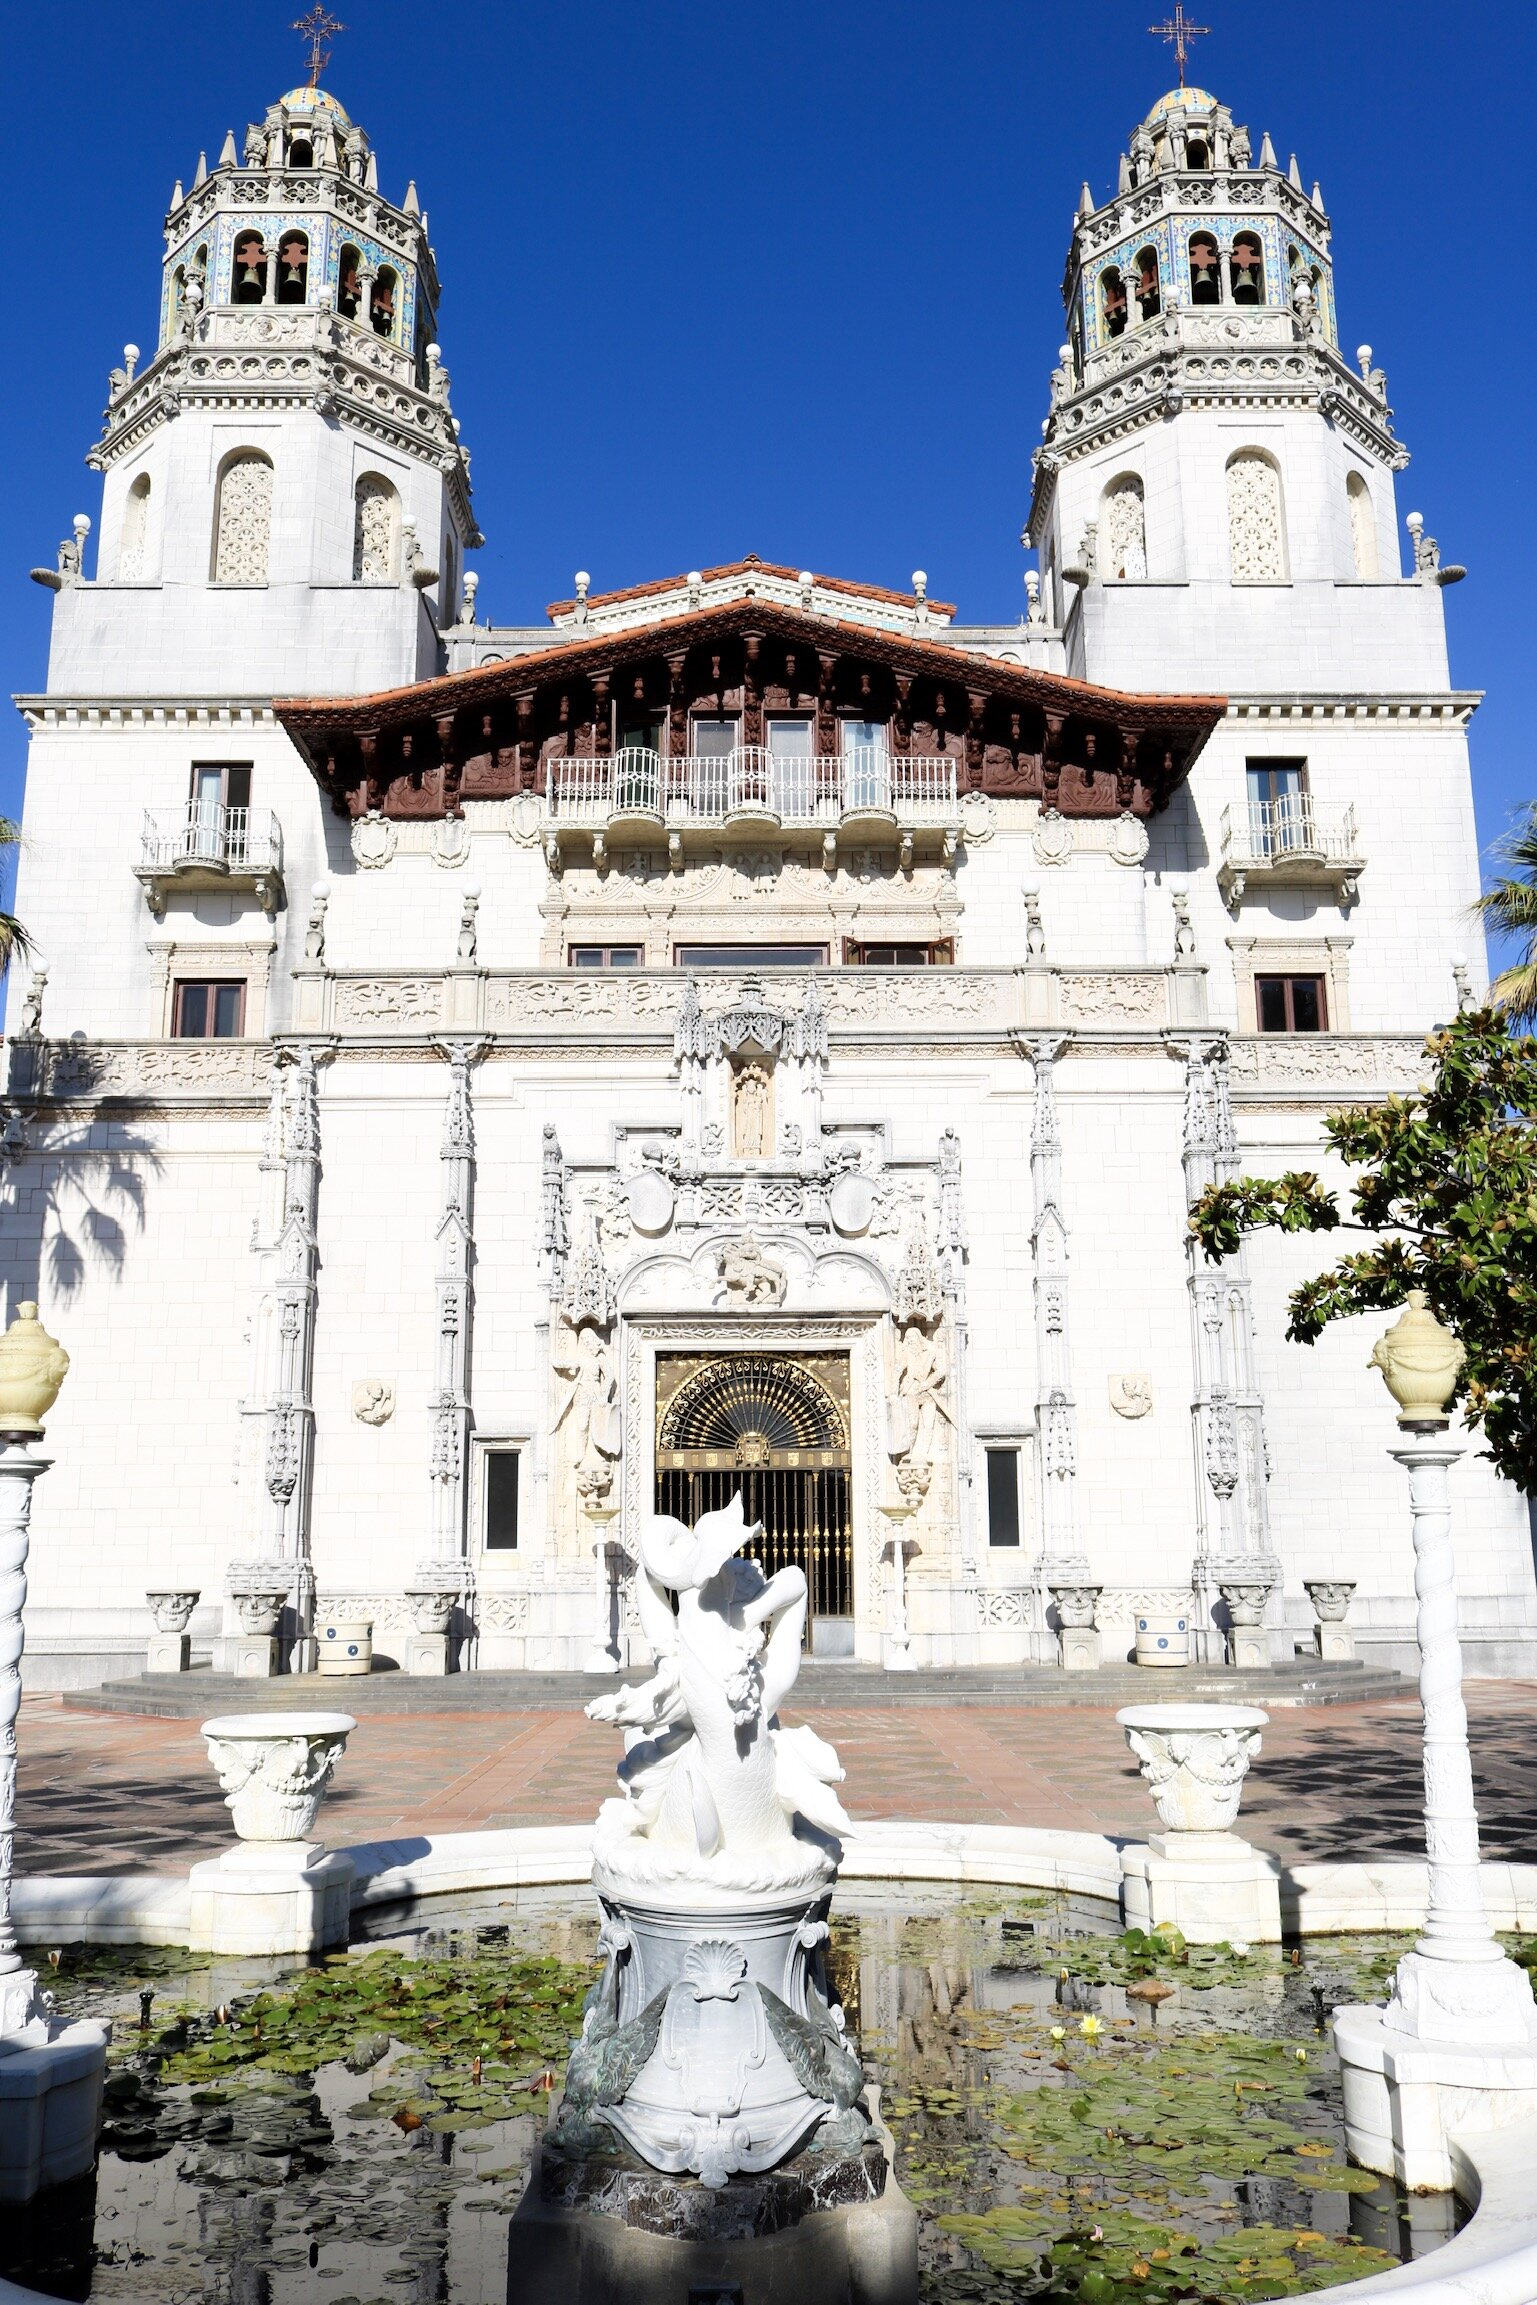 Grand building at Hearst Castle in San Simeon, California